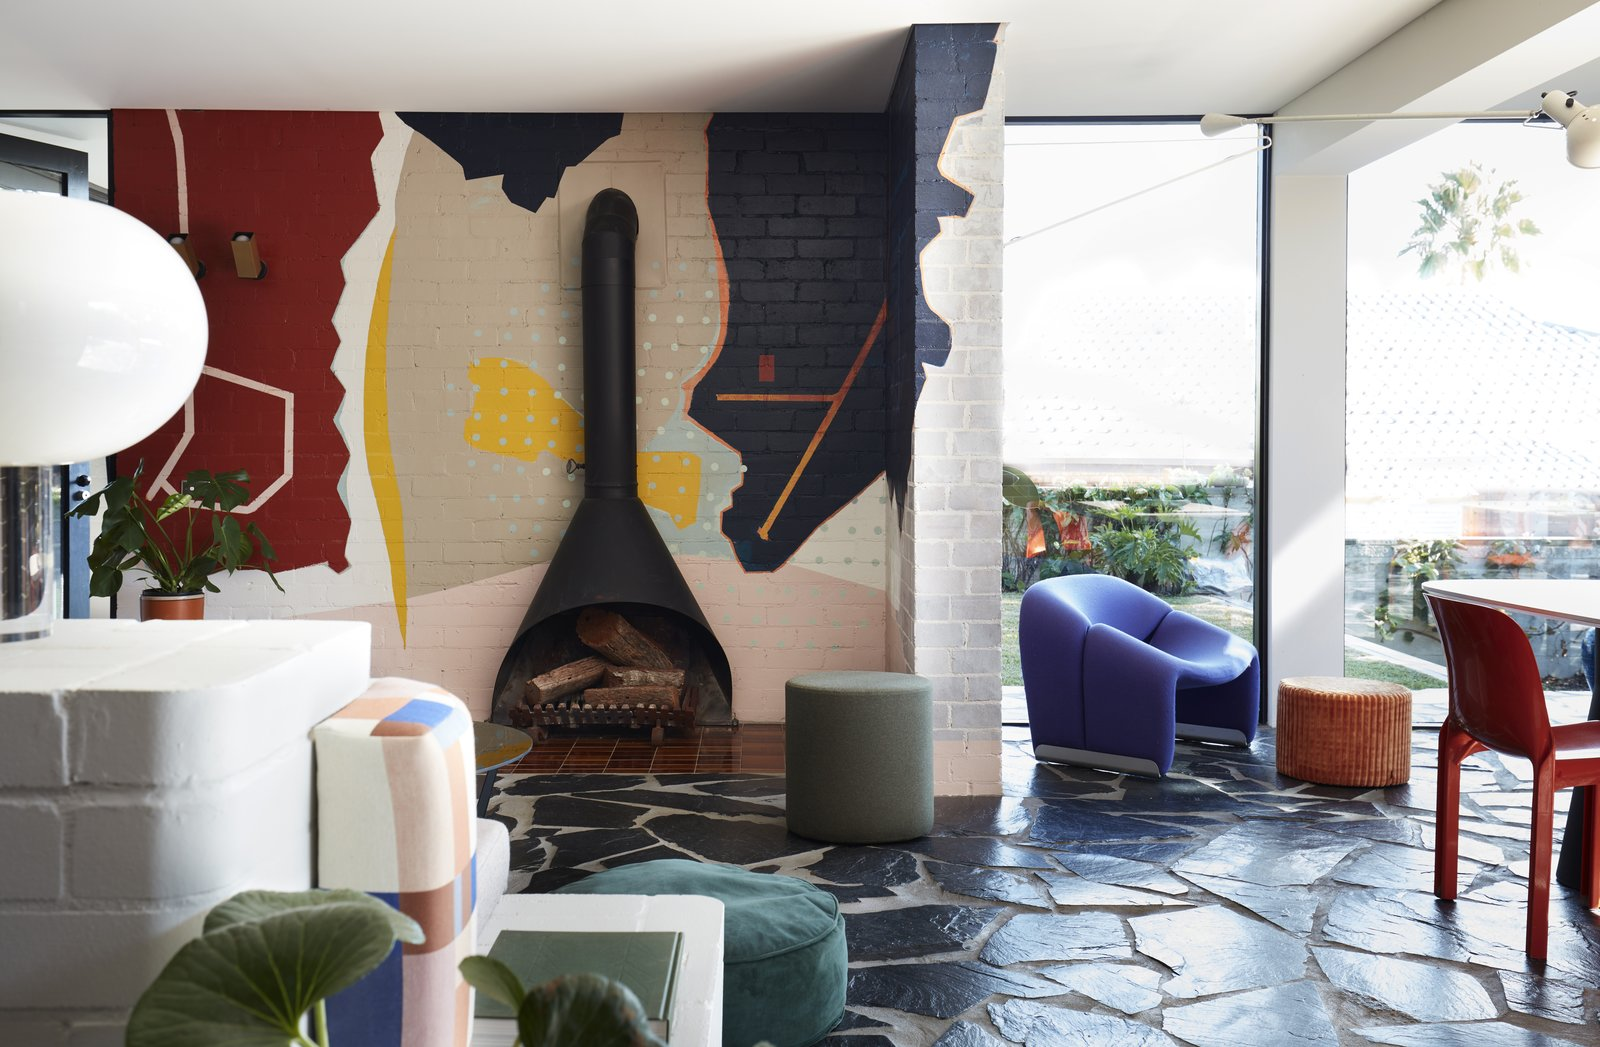 Articles about 5 bold australian homes on Dwell.com